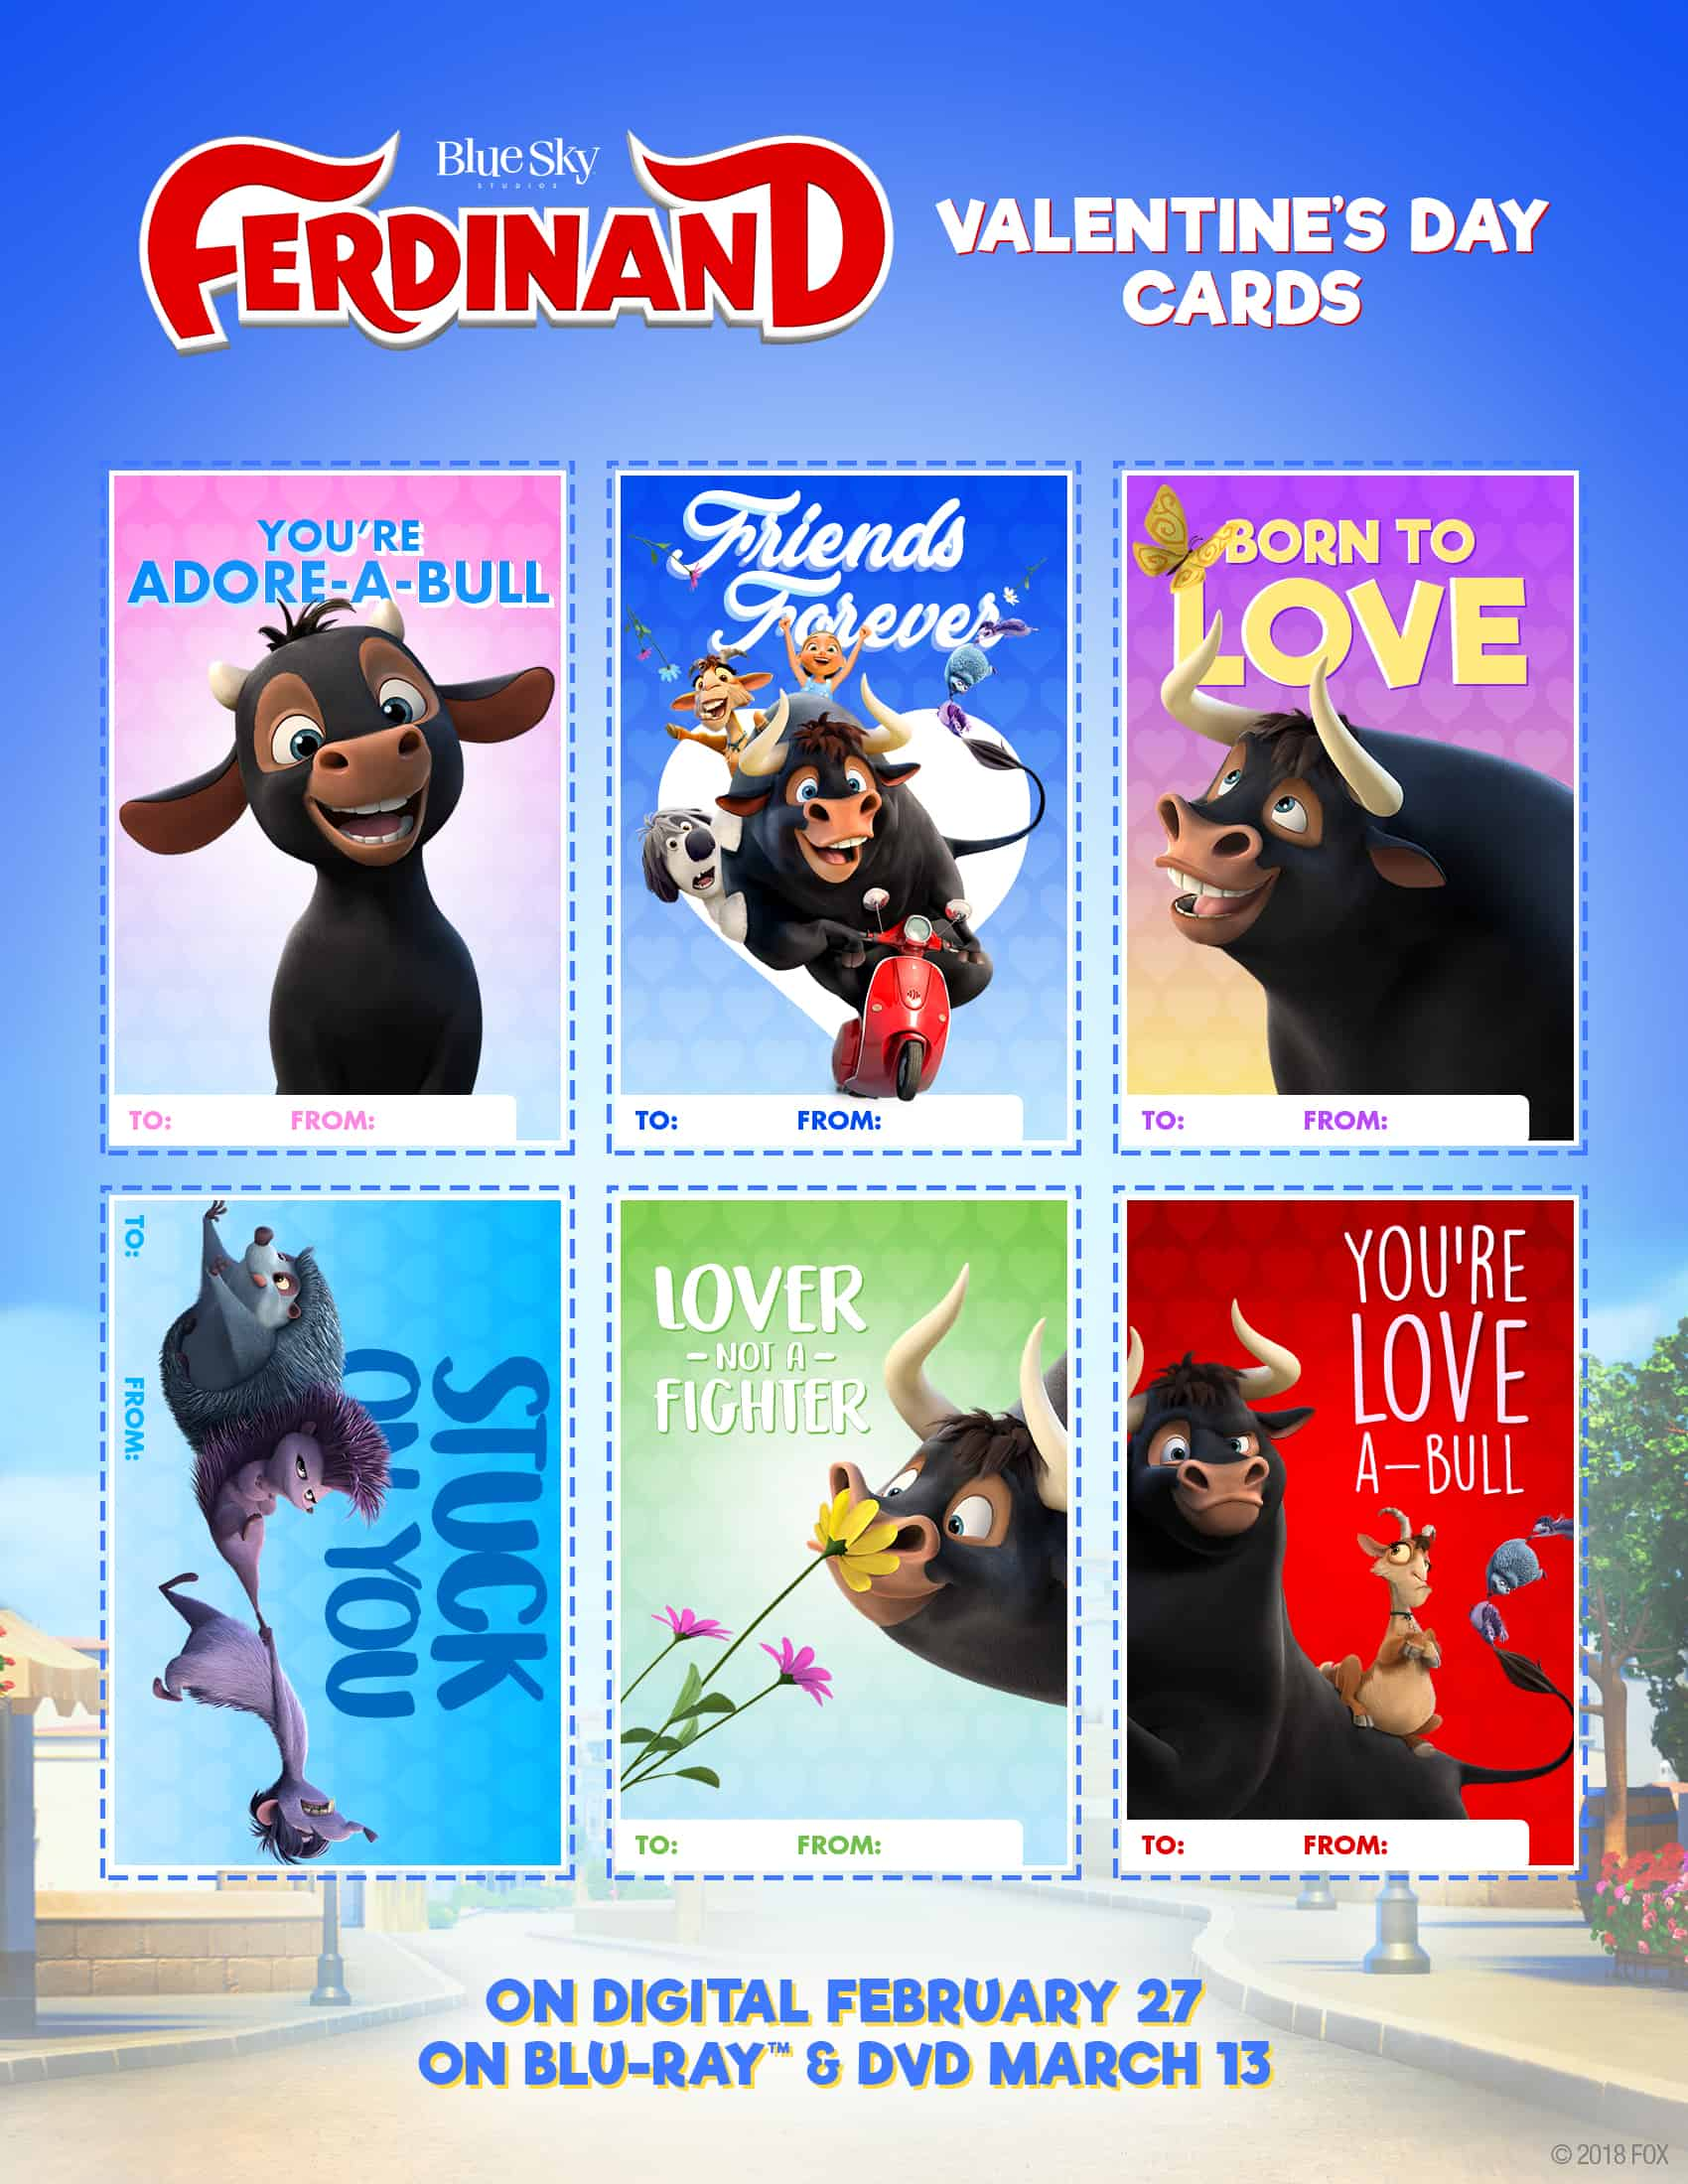 In anticipation of the upcoming holiday, we have these ador-a-BULL Ferdinand Valentine's Day cards for any of your last minute needs. They're quick, fun and easy to create. Enjoy these lovea-BULL characters and Ferdinand will be availa-BULL on Digital 2/27 and on 4K Ultra HD, Blu-ray and DVD 3/13.